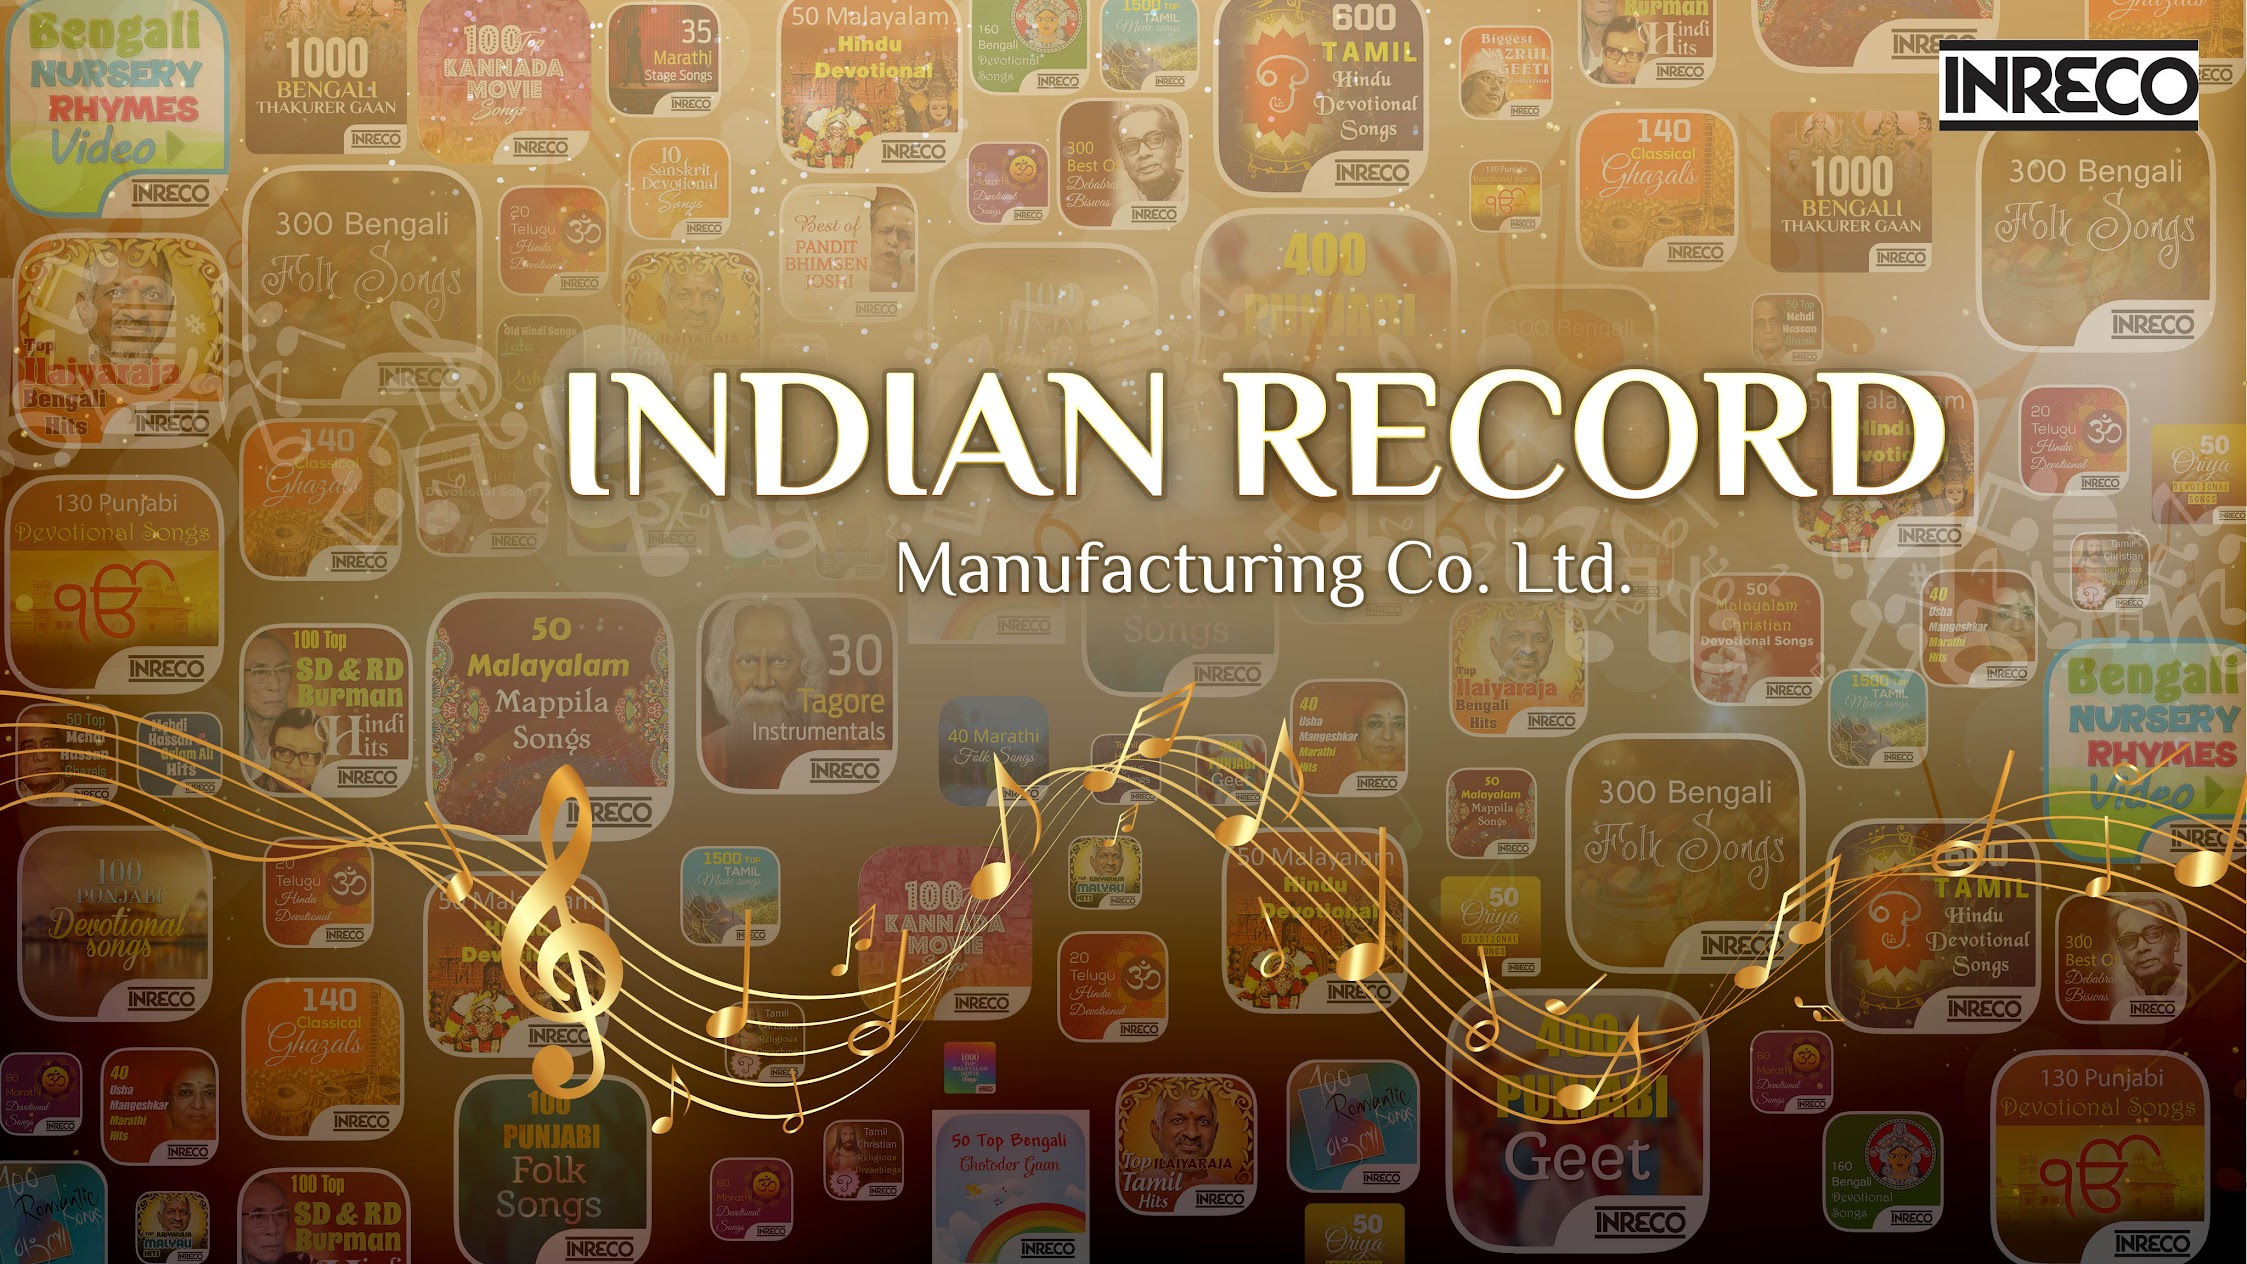 The Indian Record Mfg. Co. Ltd.